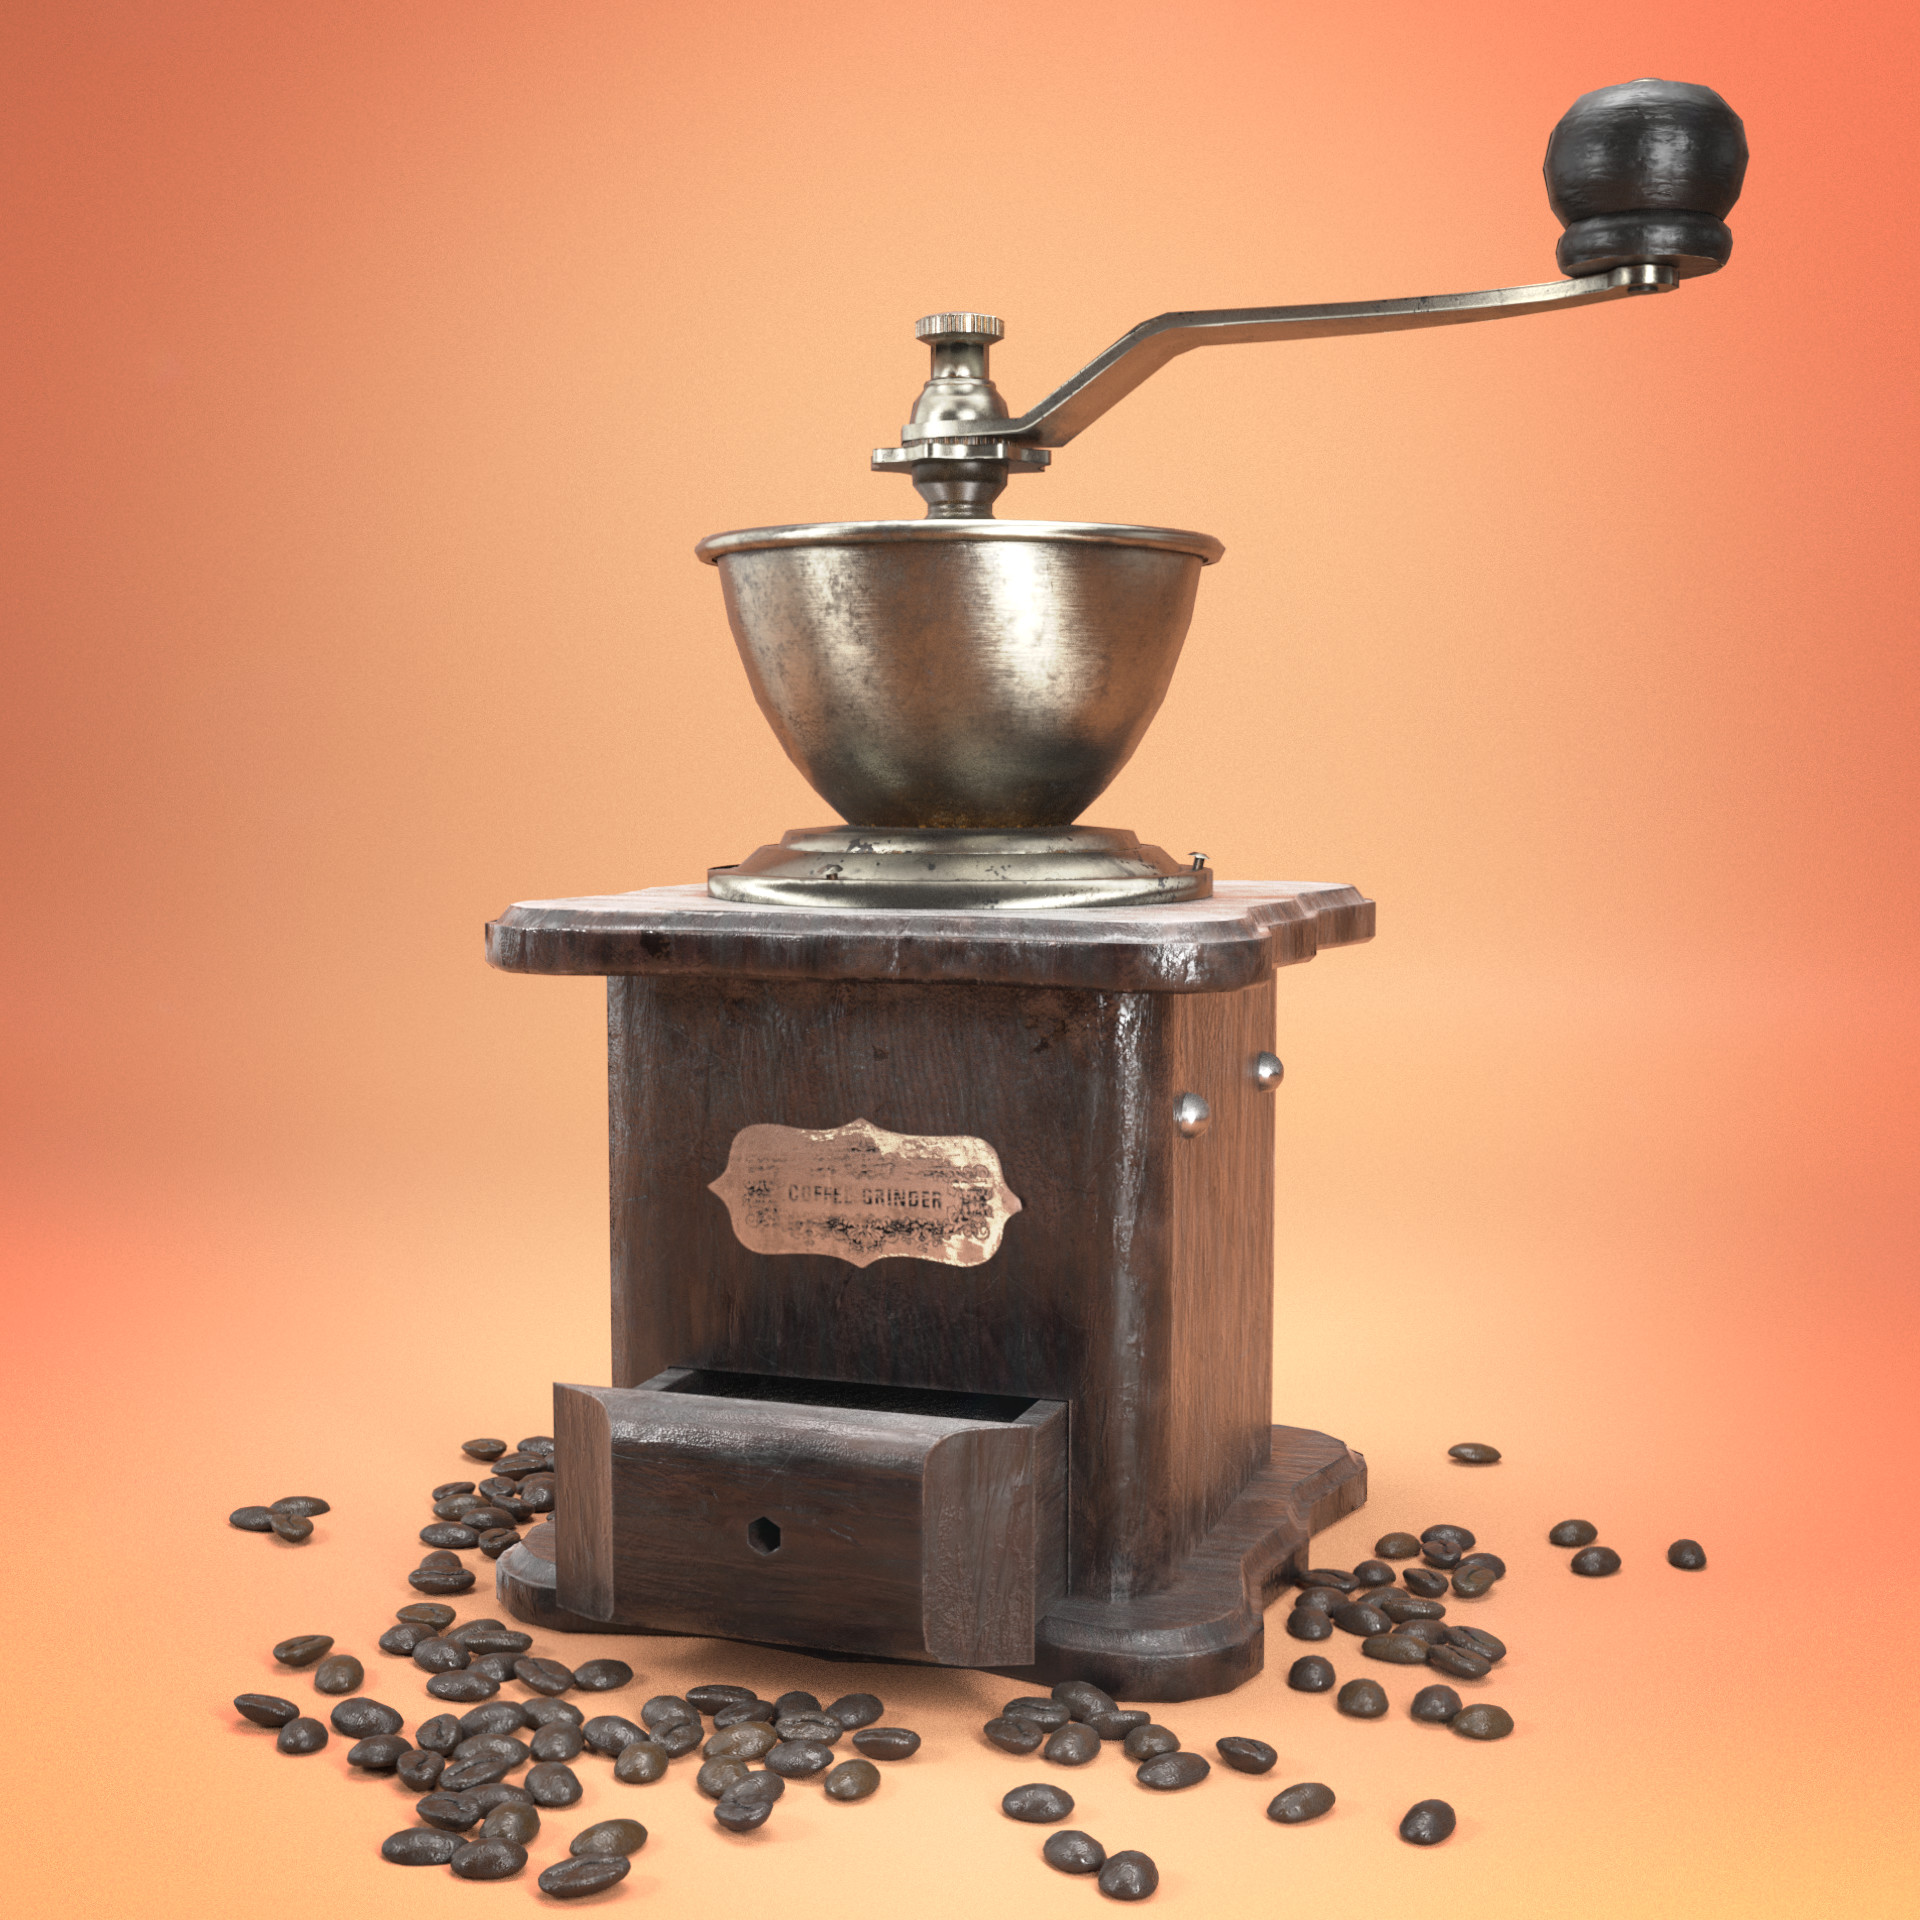 3229 Faces (Coffee Grinder).